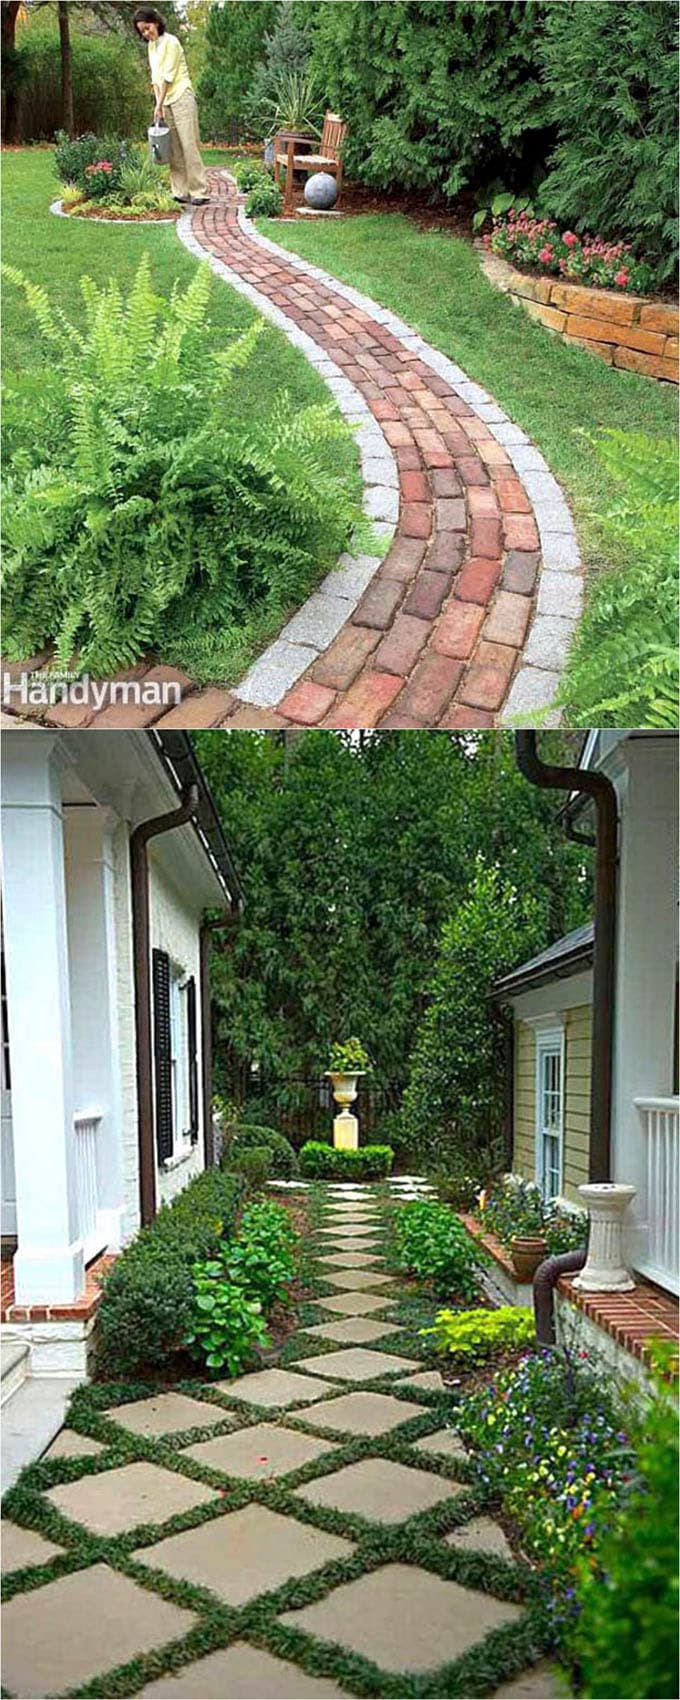 A Grassy Area Is Beautiful. It Is Not Suitable For Heavy Traffic Such As  Loaded Wheel Barrels. By Adding Attractive Pavers Such As Brick, Slate, ...